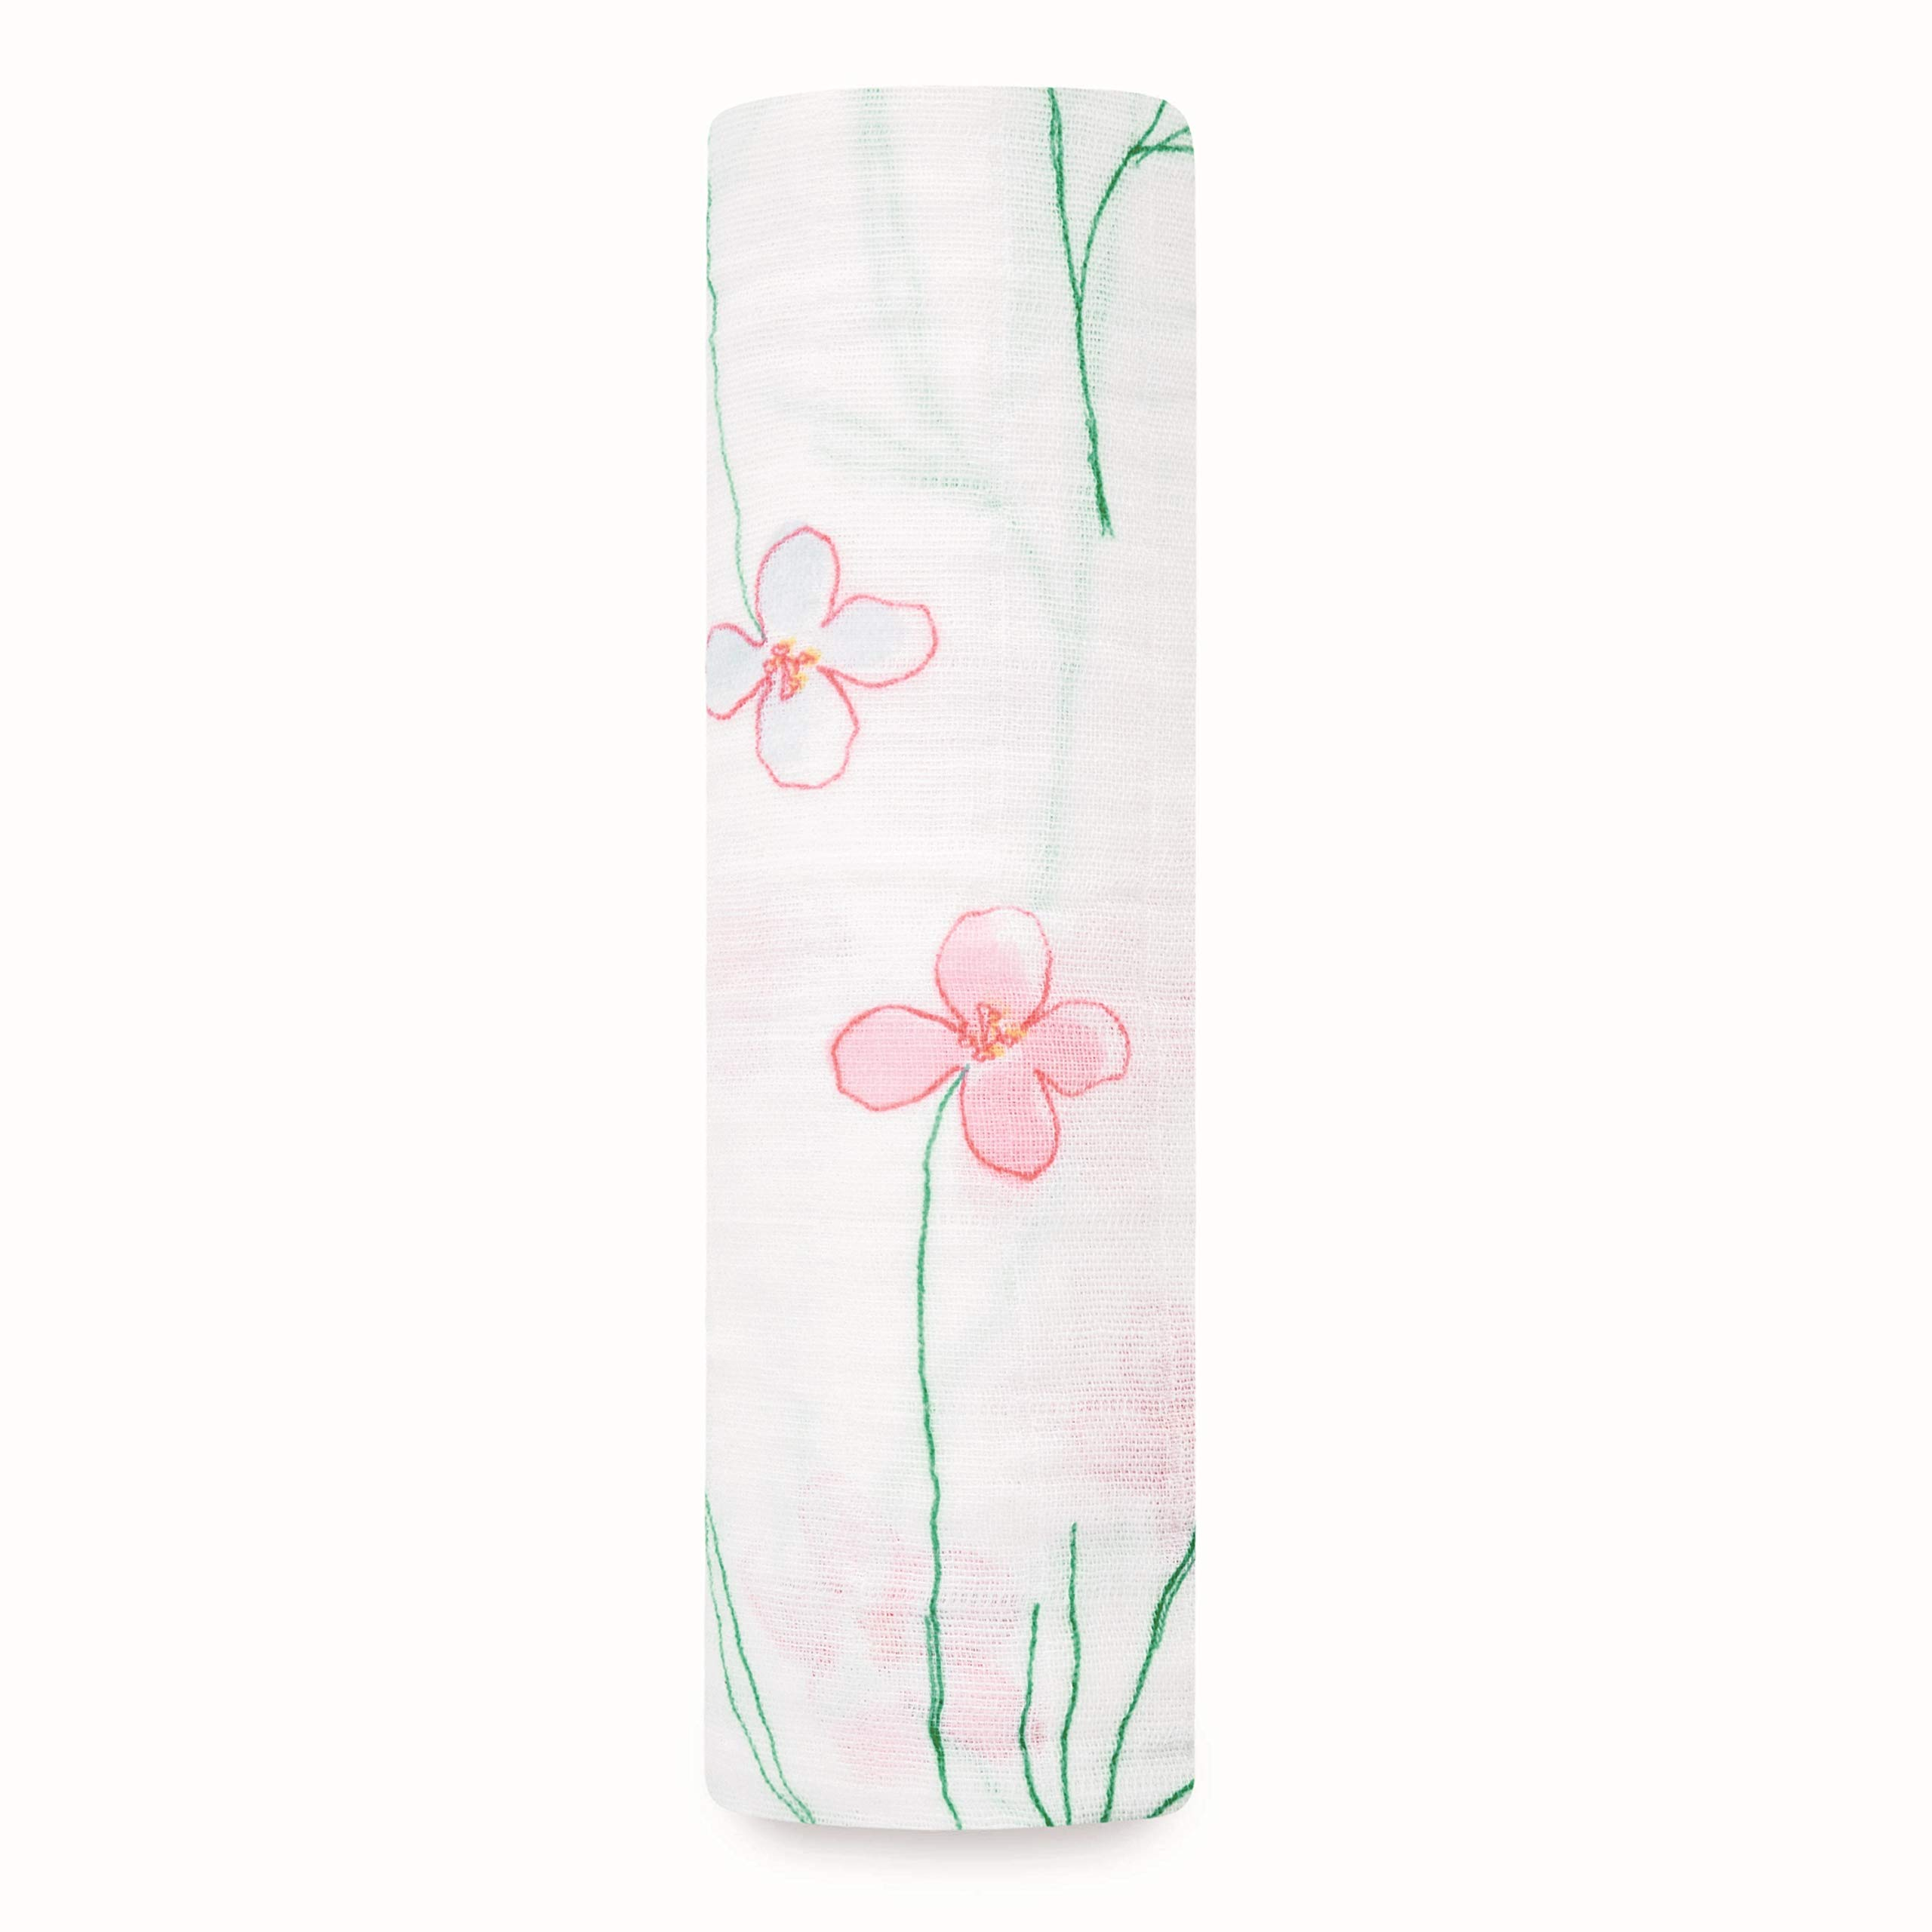 aden + anais Swaddle Blanket, Boutique Muslin Blankets for Girls & Boys, Baby Receiving Swaddles, Ideal Newborn & Infant Swaddling Set, Perfect Shower Gifts, Single, Forest Fantasy